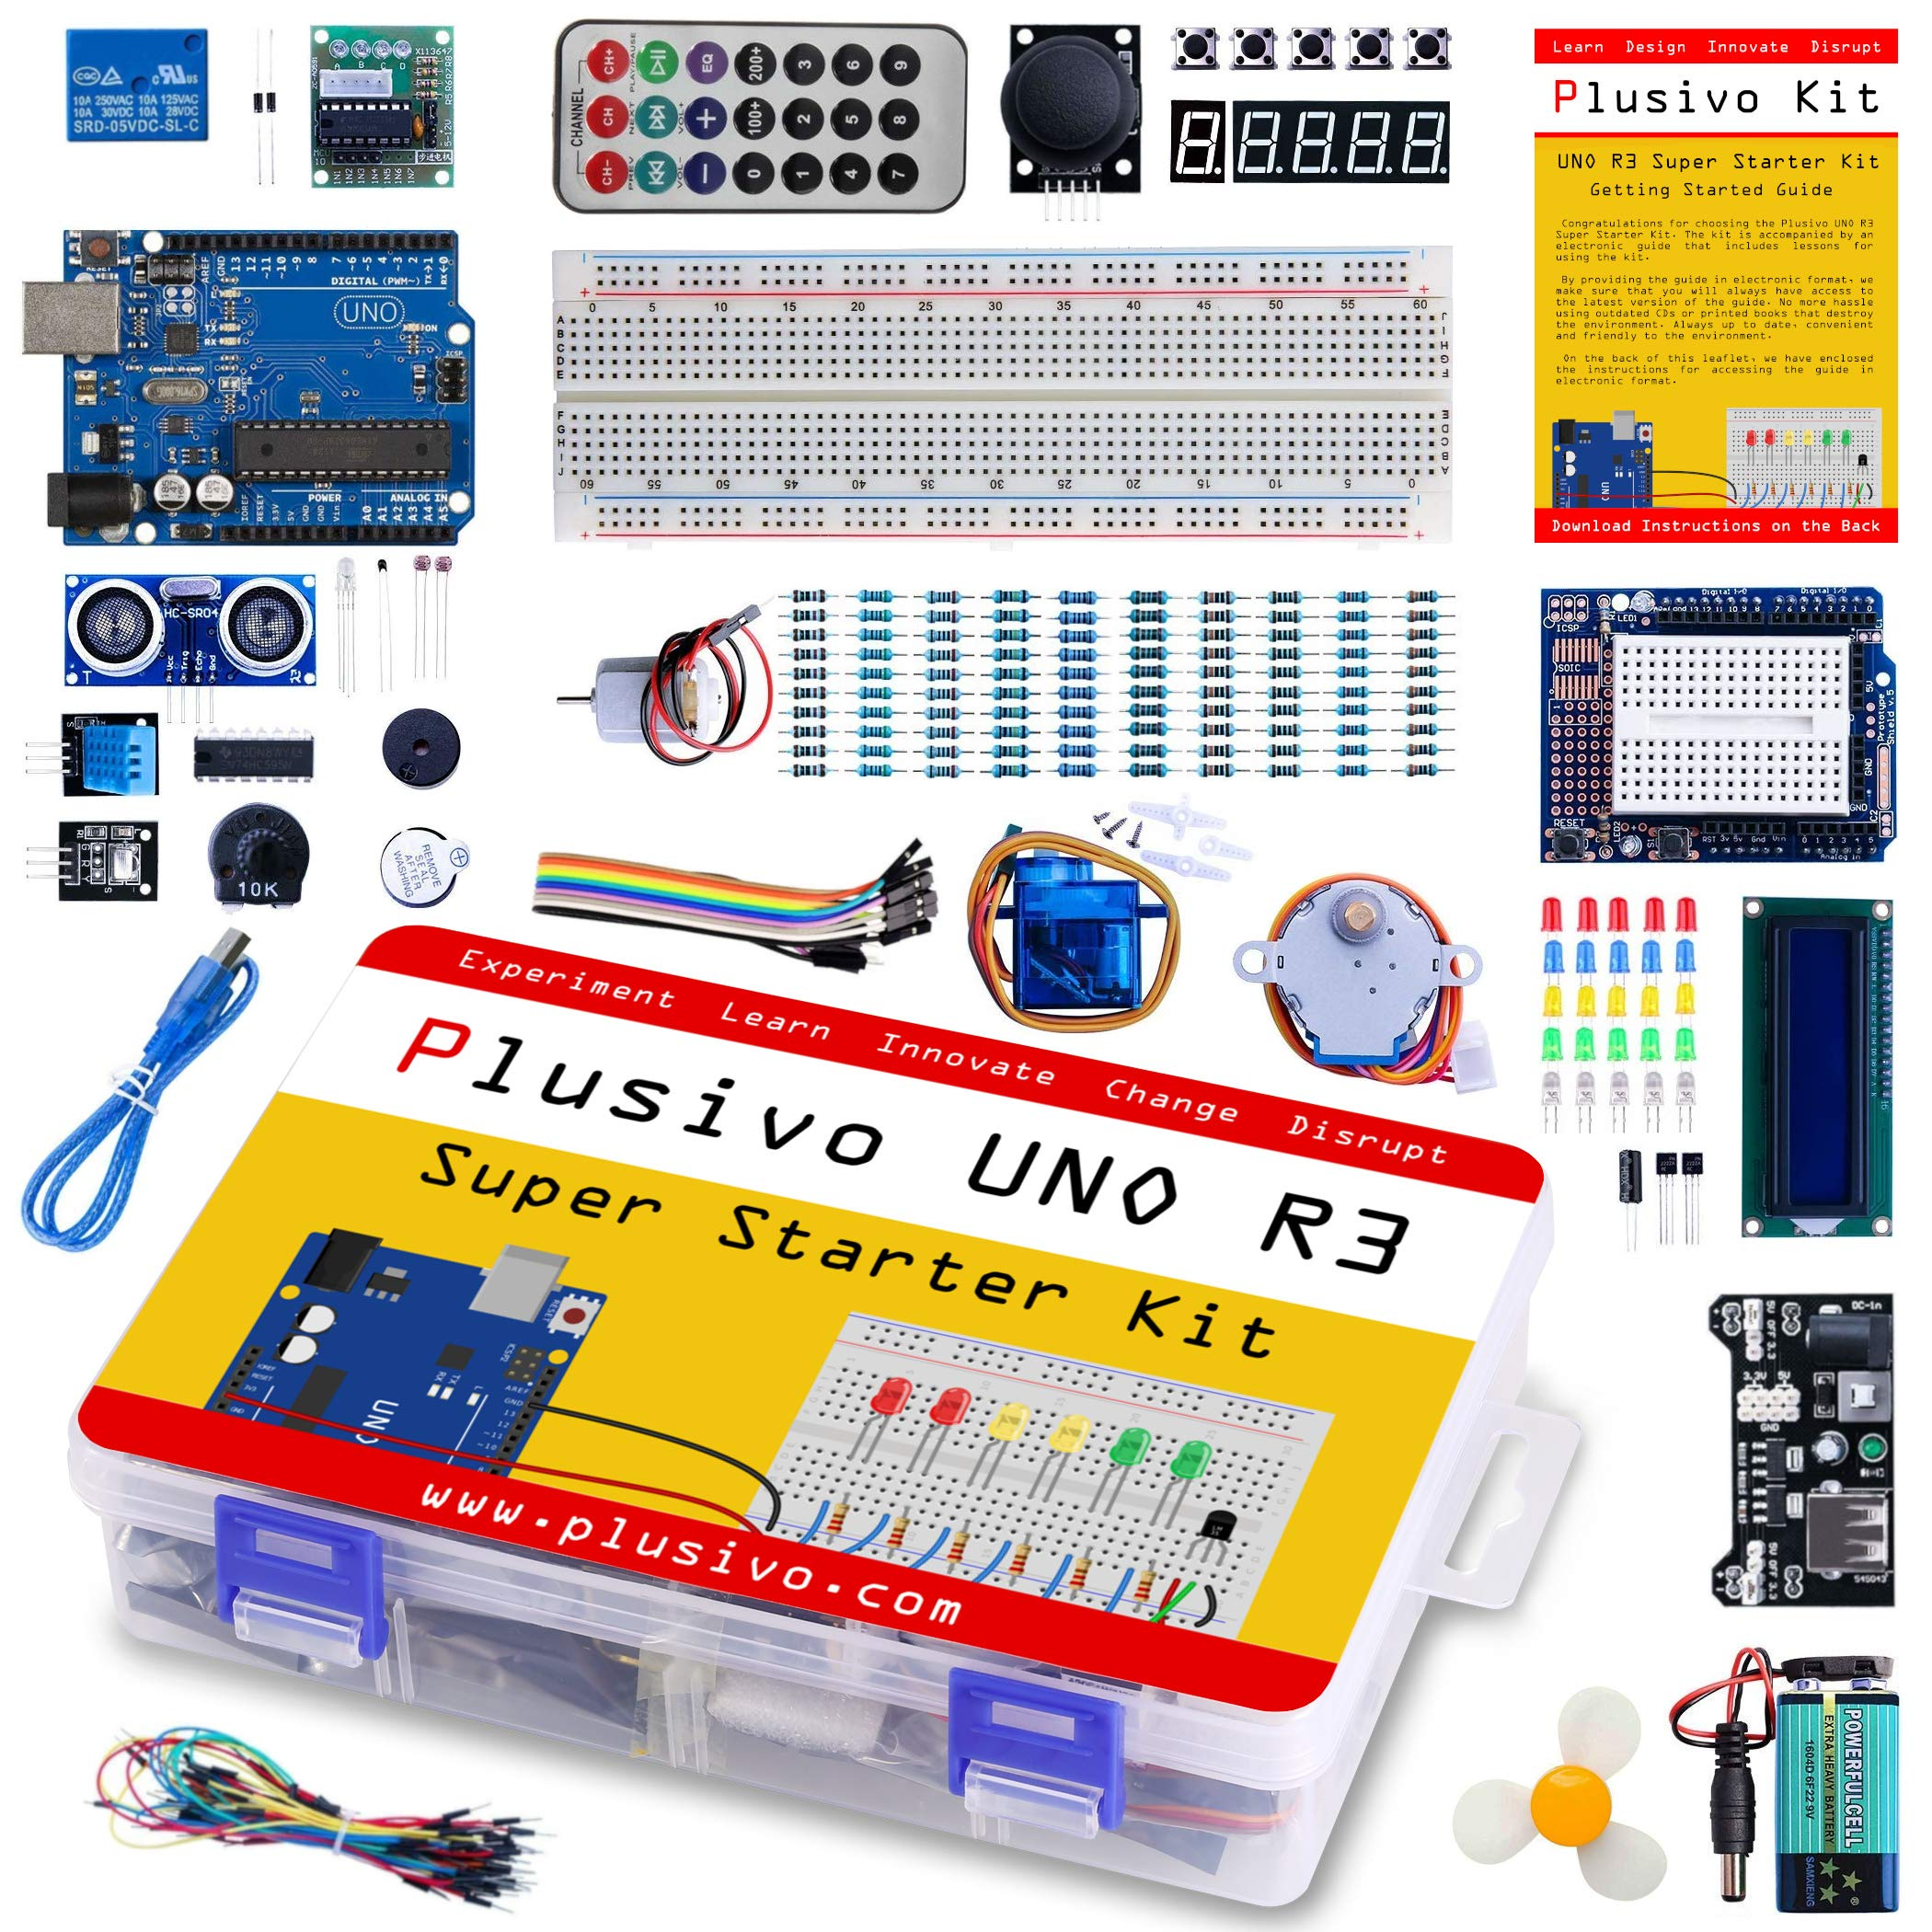 Plusivo UNO R3 Super Starter Kit - Complete UNO R3 Kit for Arduino Programming and Development - Includes a Development Board Compatible with Arduino UNO R3 - A Beginner's Inventor Kit